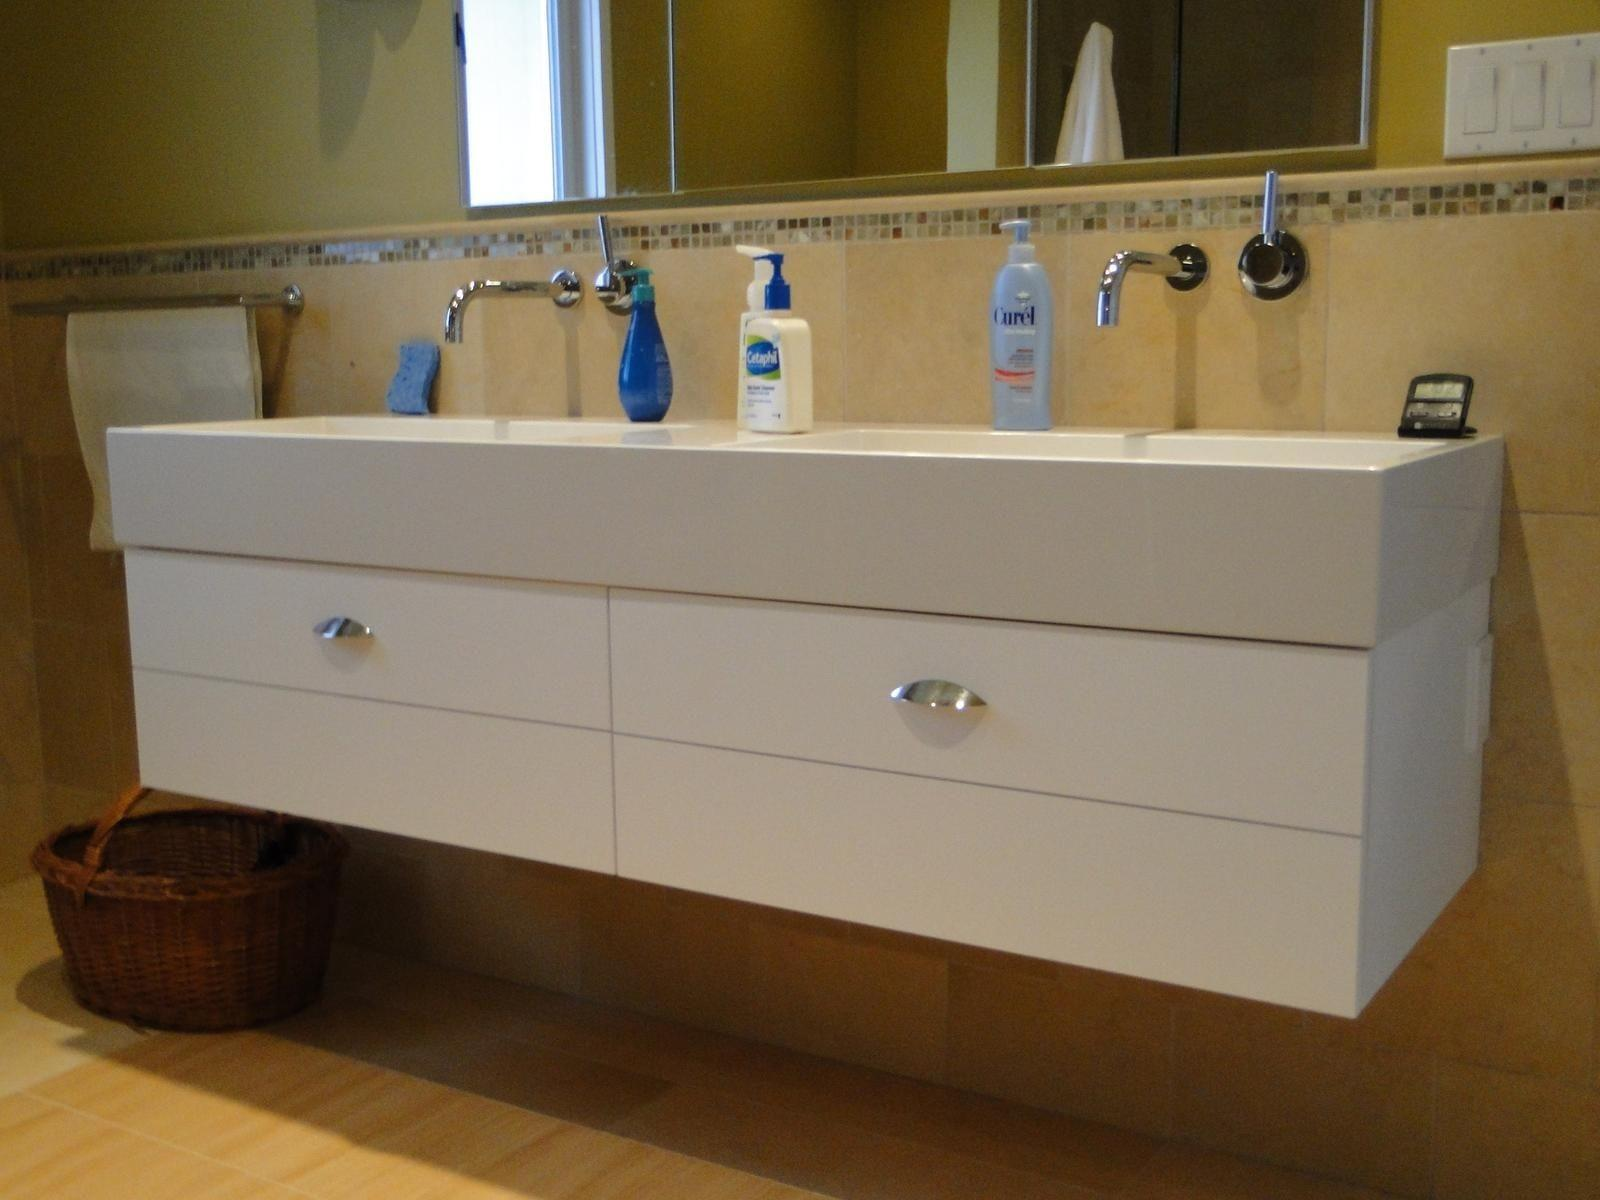 Bathroom Floating Trough Sink Two Faucets